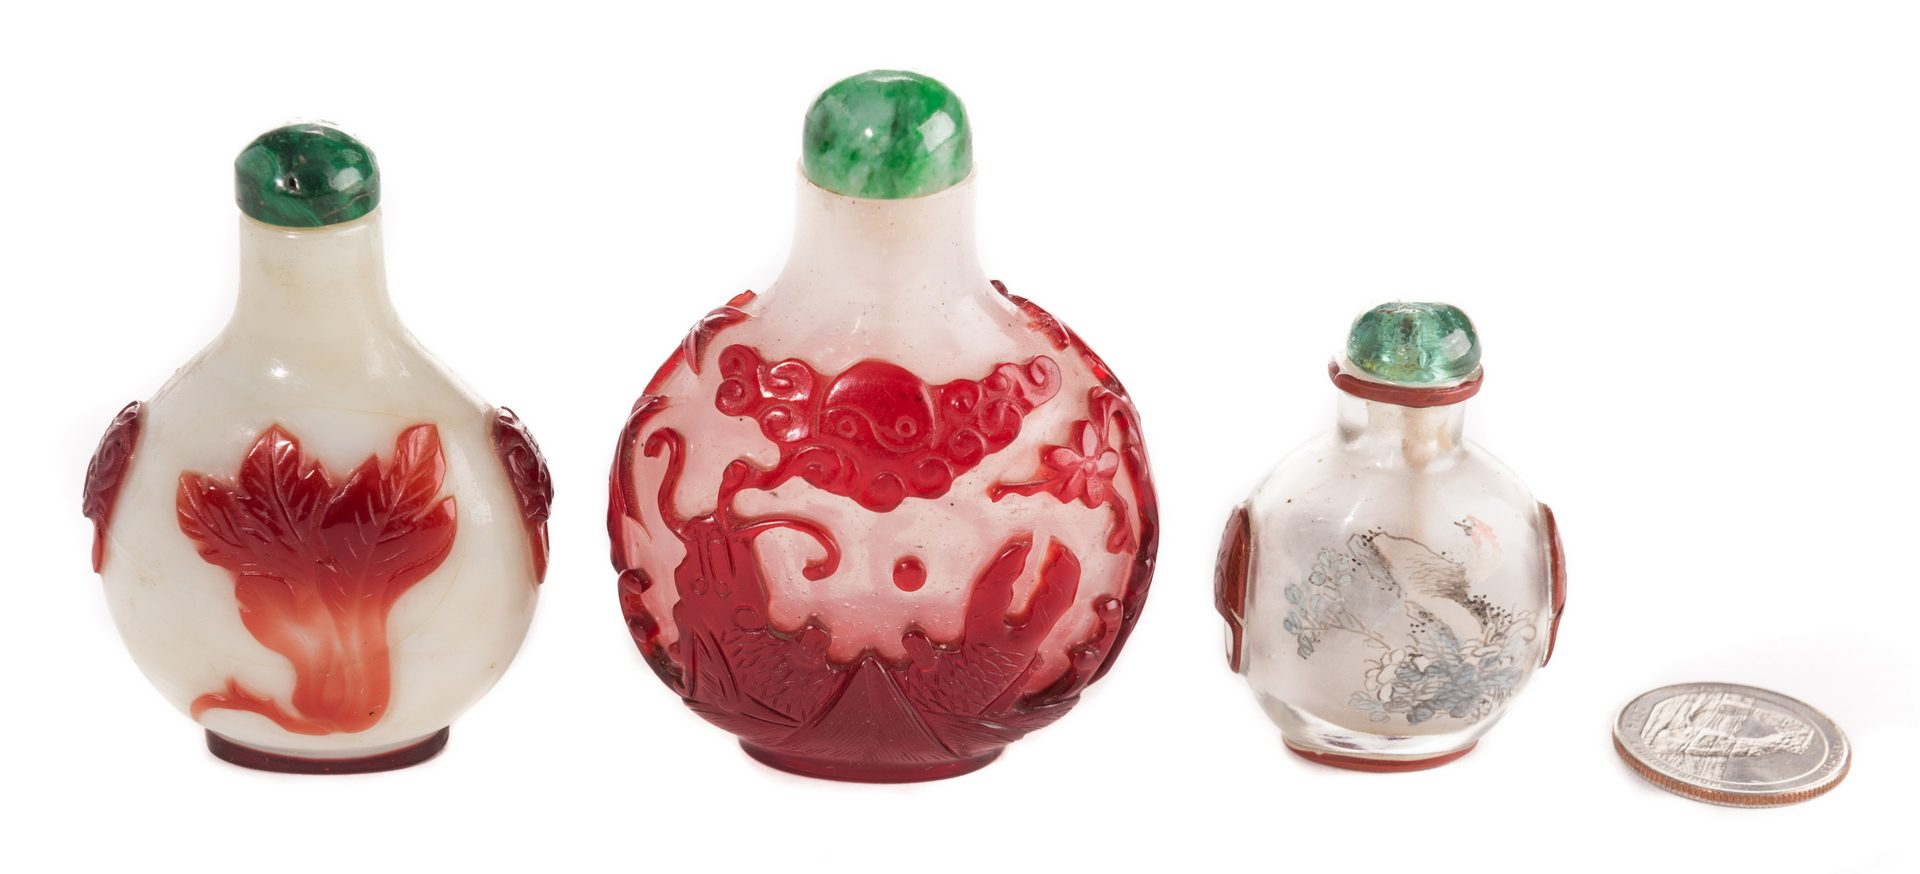 Lot 39: 3 Chinese Glass Snuff bottles